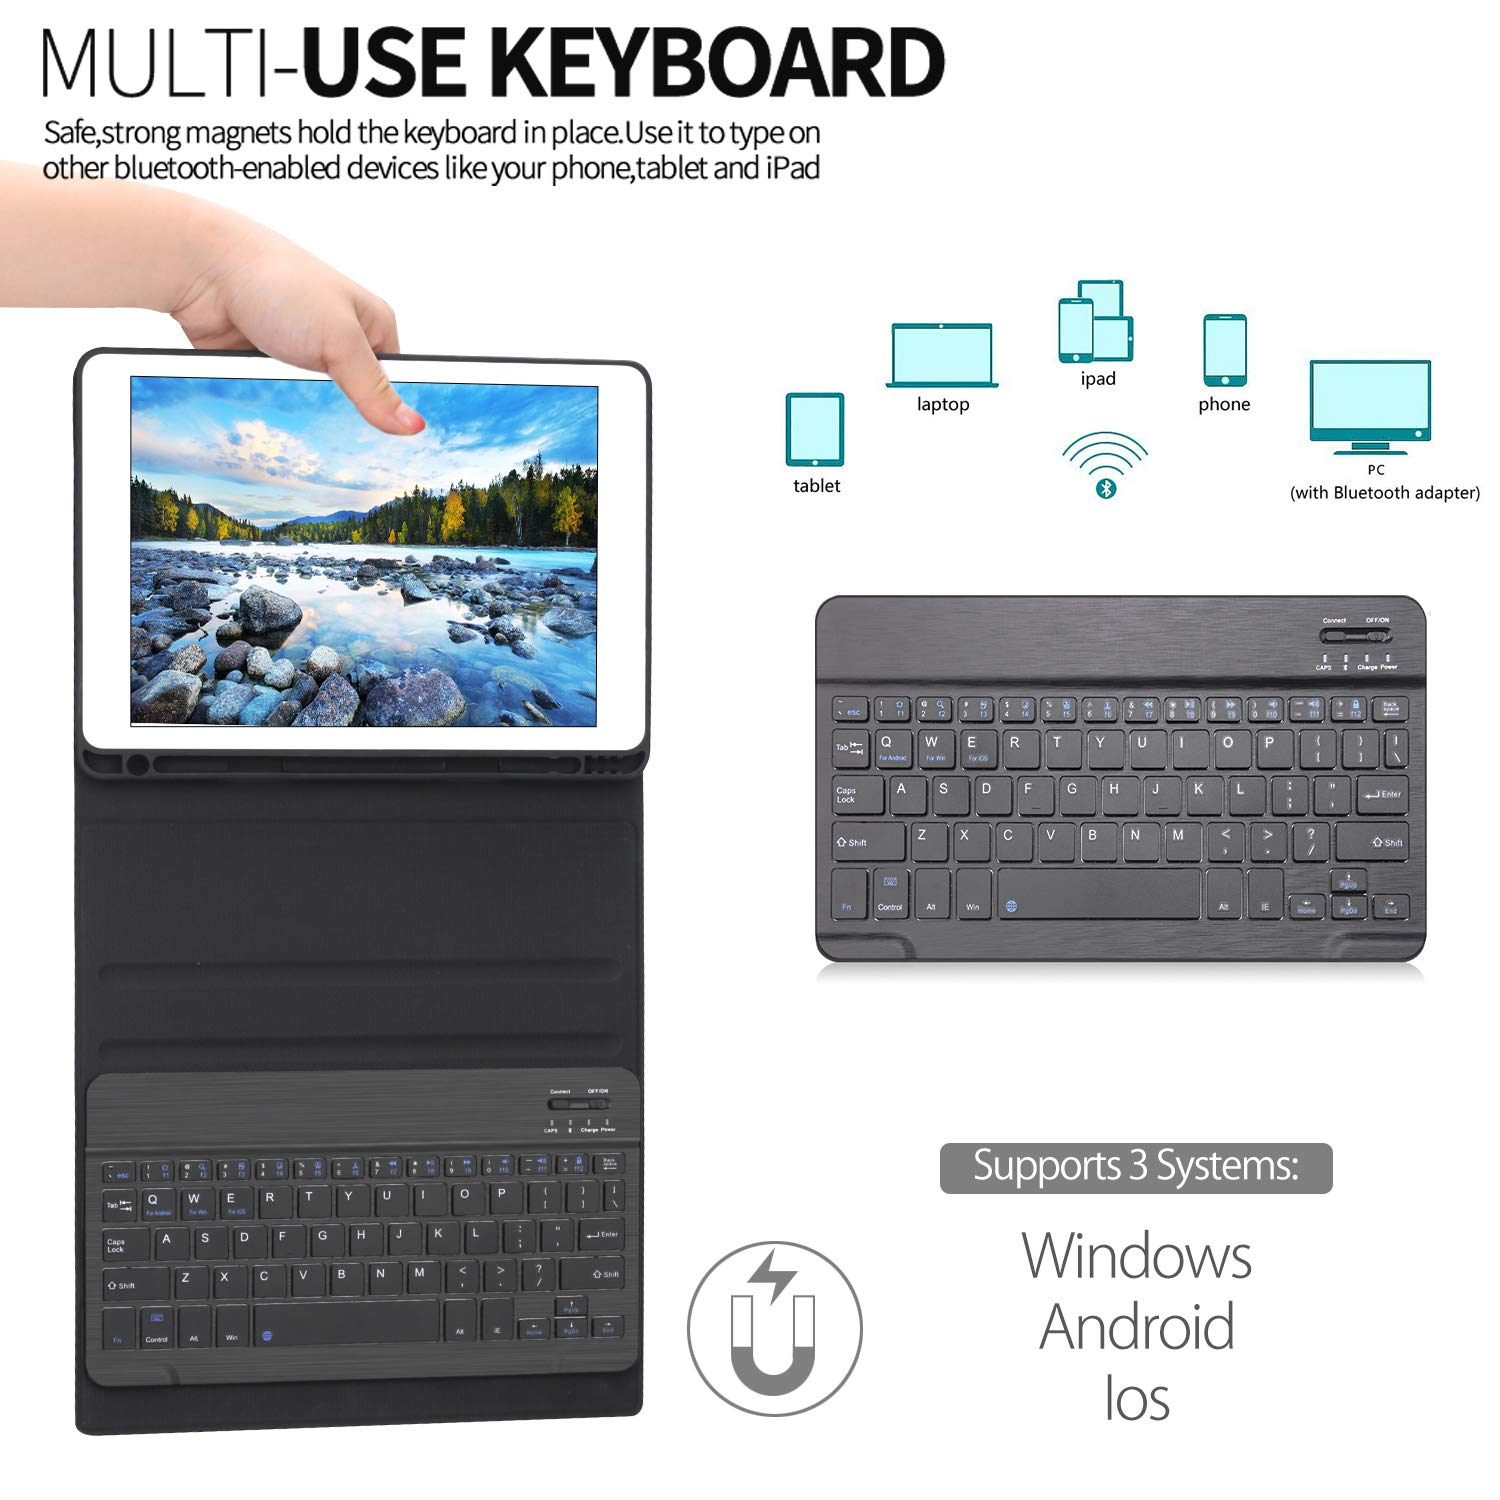 iPad Keyboard Case for iPad 6th Generation - iPad 5th Gen (9.7 inch) - iPad Air 1/2 - iPad Pro 9.7, Pencil Holder, Detachable Wireless Keyboard(without Backlight), iPad Keyboard Case 9.7 (Black, 9.7)